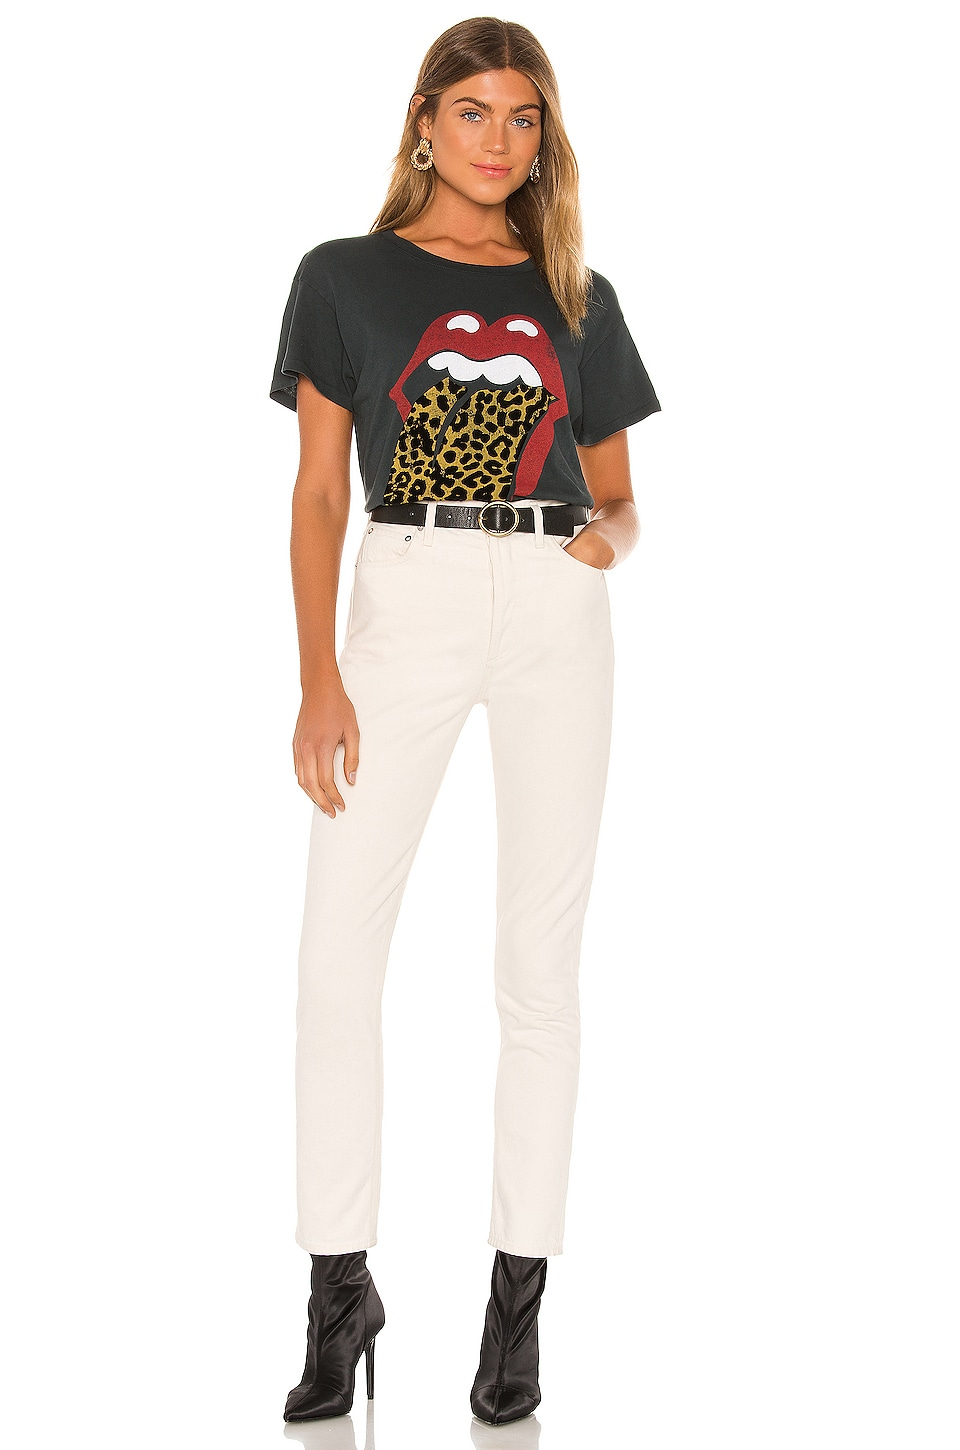 Rolling Stones Leopard Tongue Tour Tee, view 5, click to view large image.